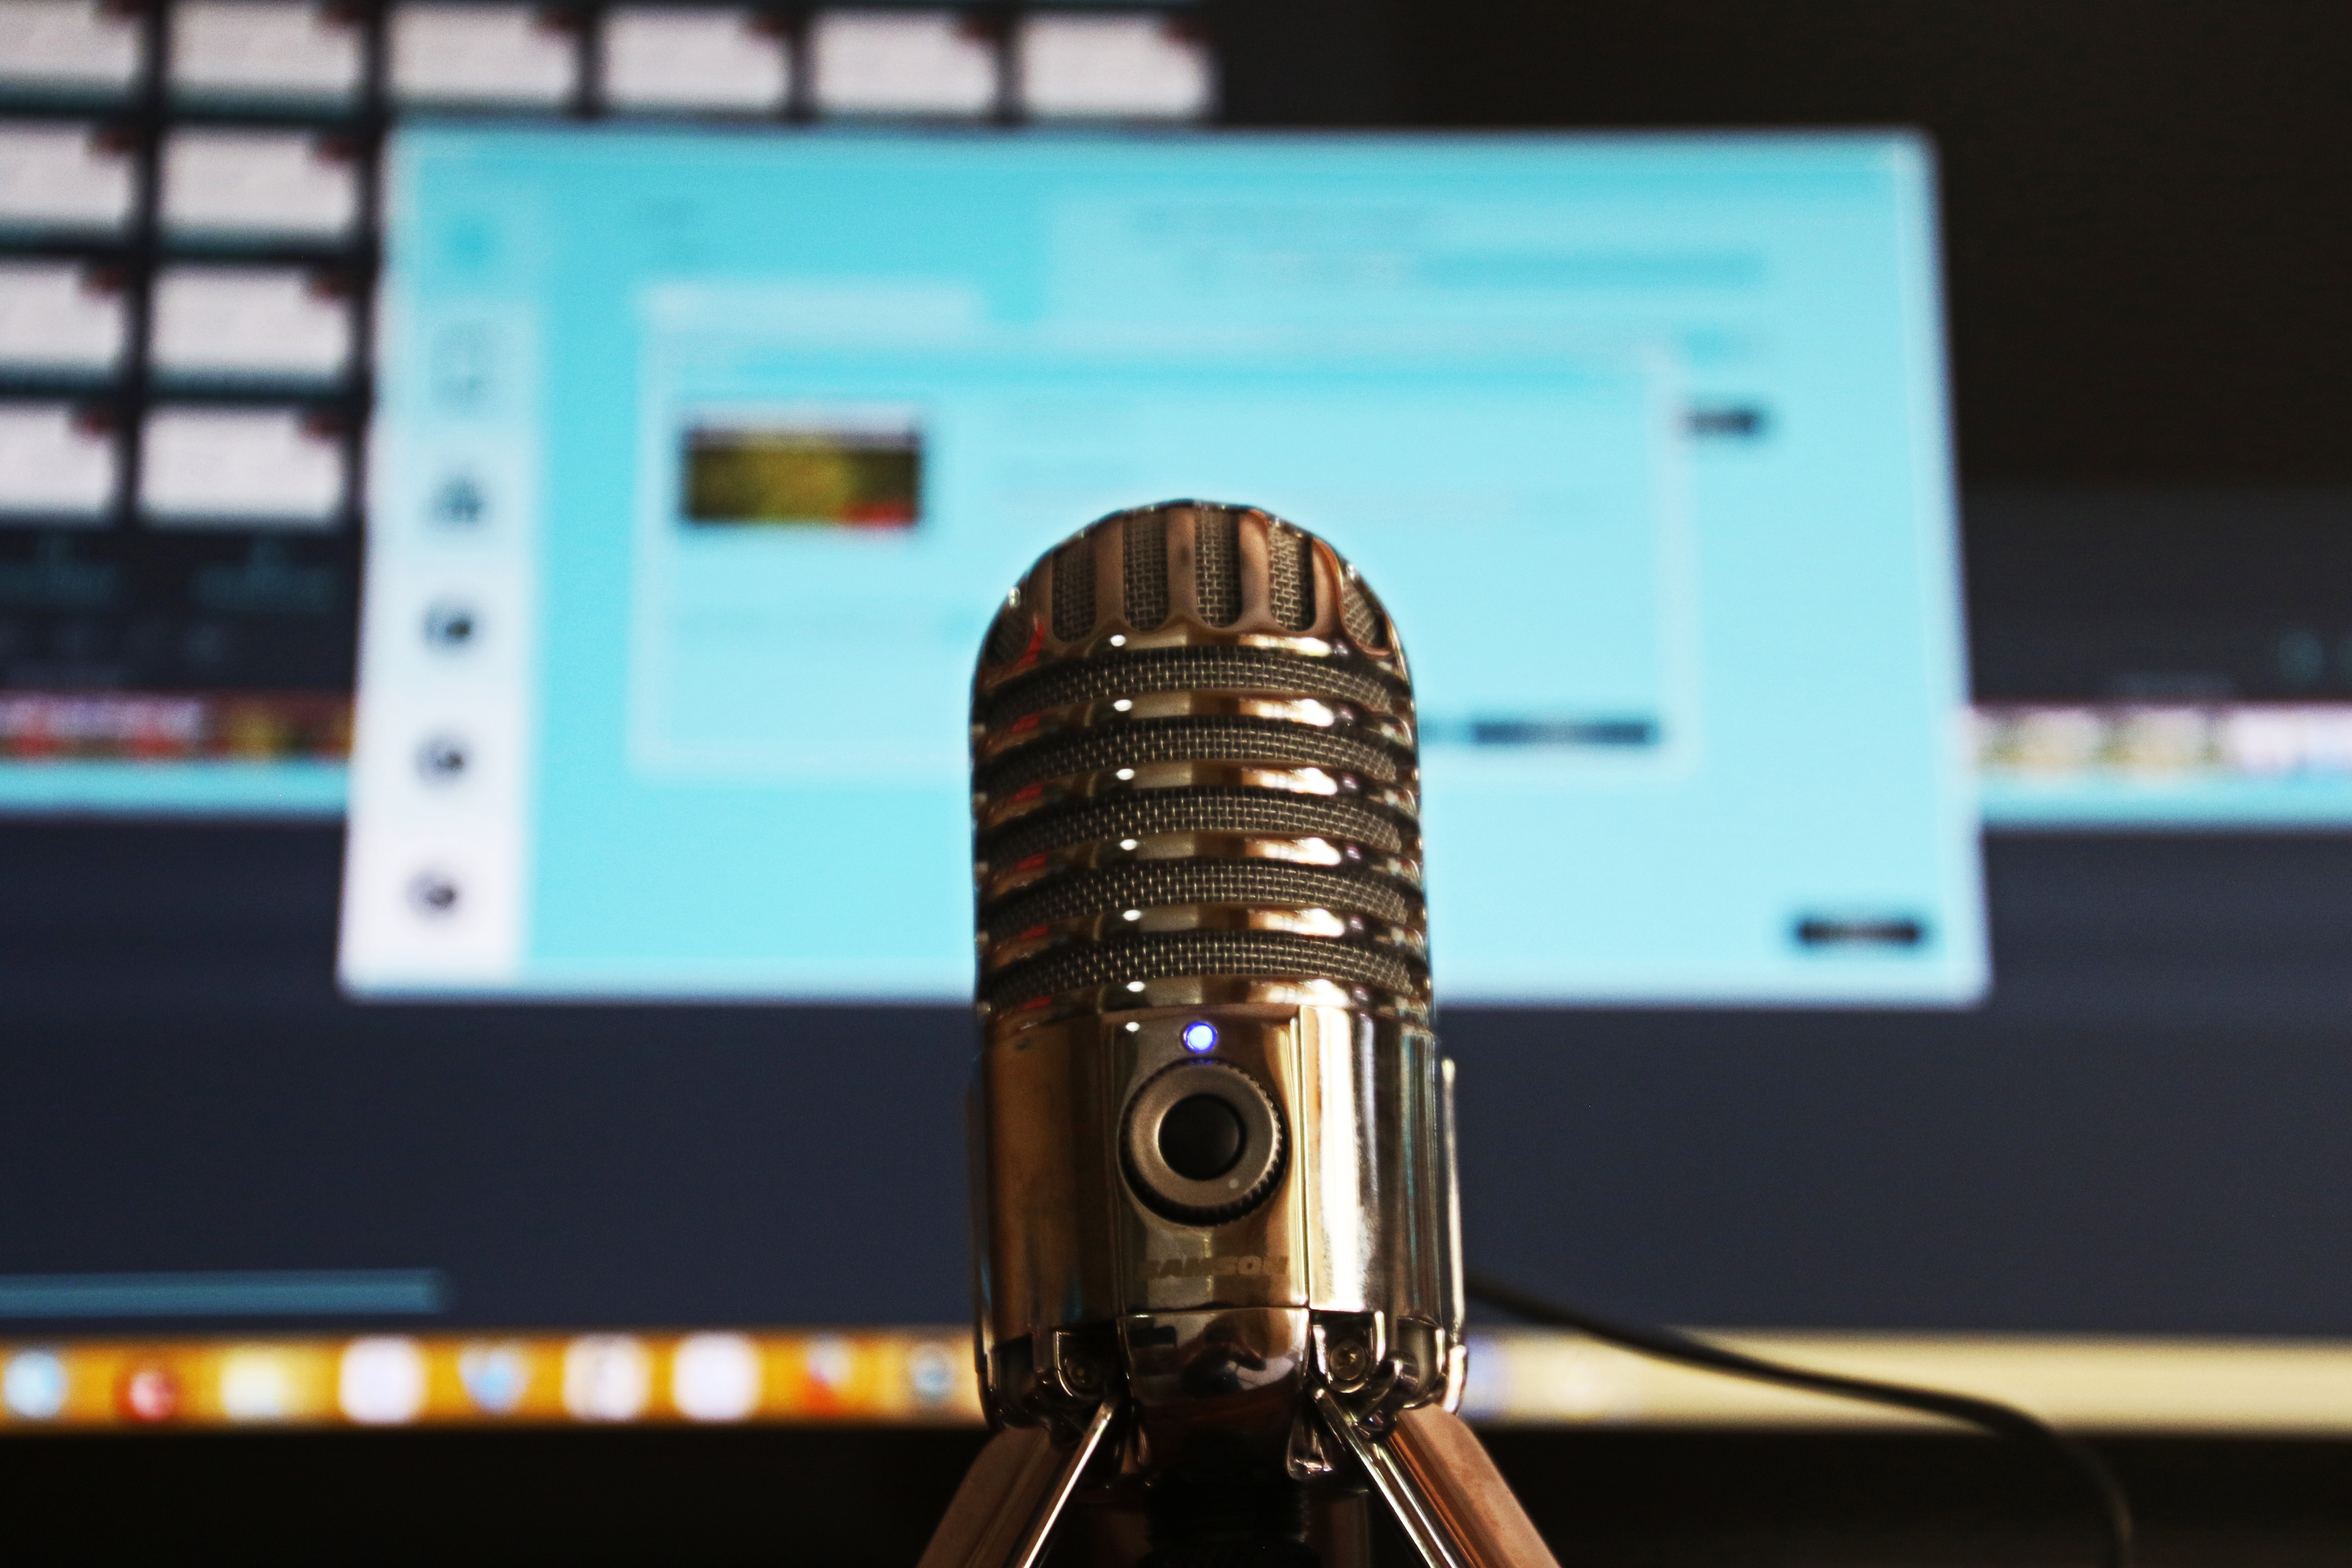 The Best Screen Recording Software for Windows